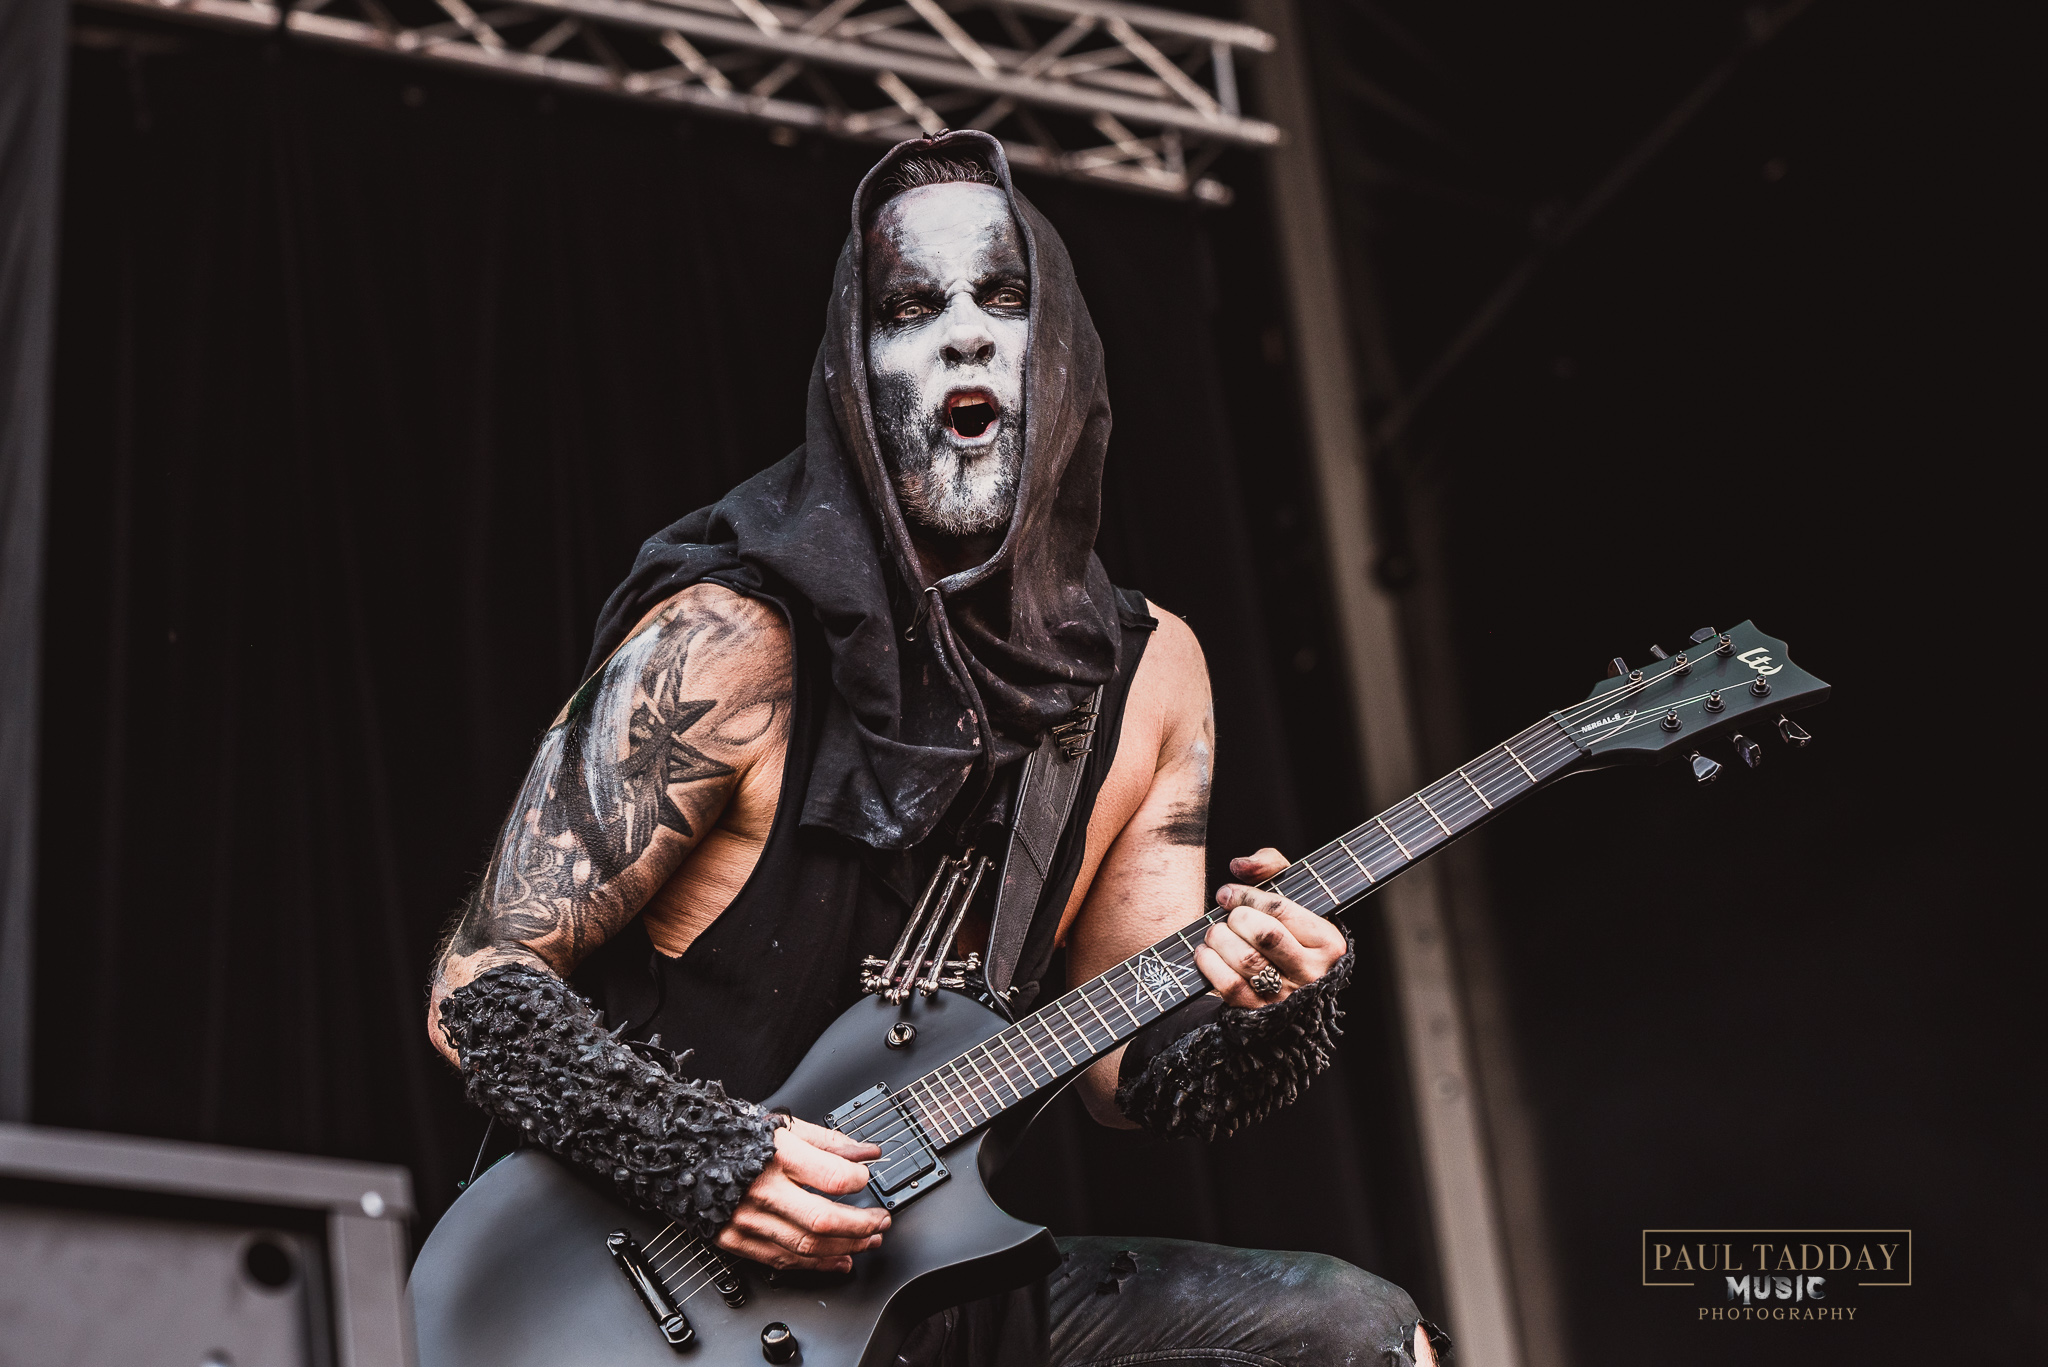 behemoth - download melbourne - march 2019 - web - paul tadday photography - 8.jpg